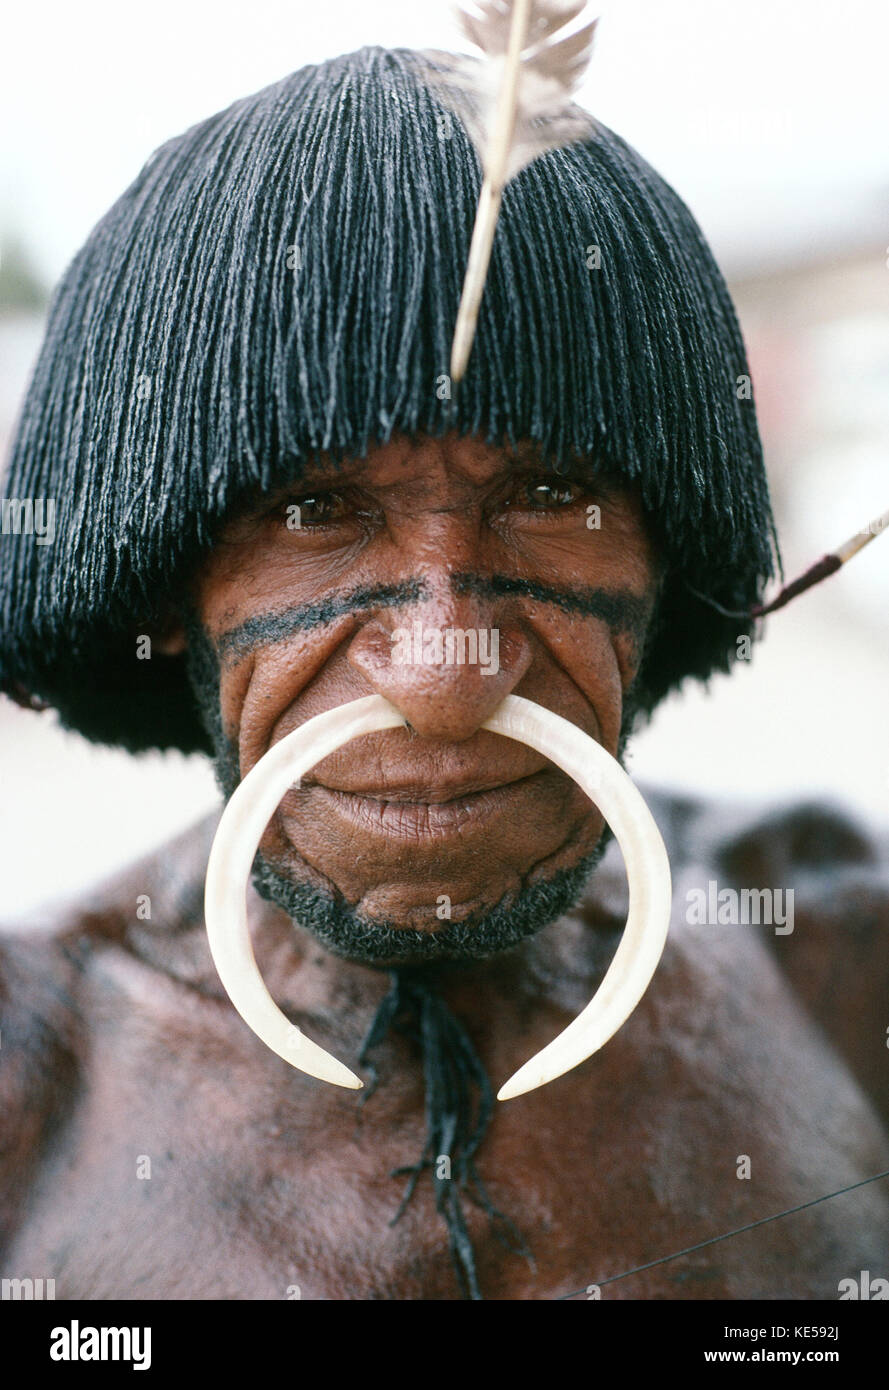 Indonesia. Irian Jaya. Portrait of Dani tribesman. - Stock Image